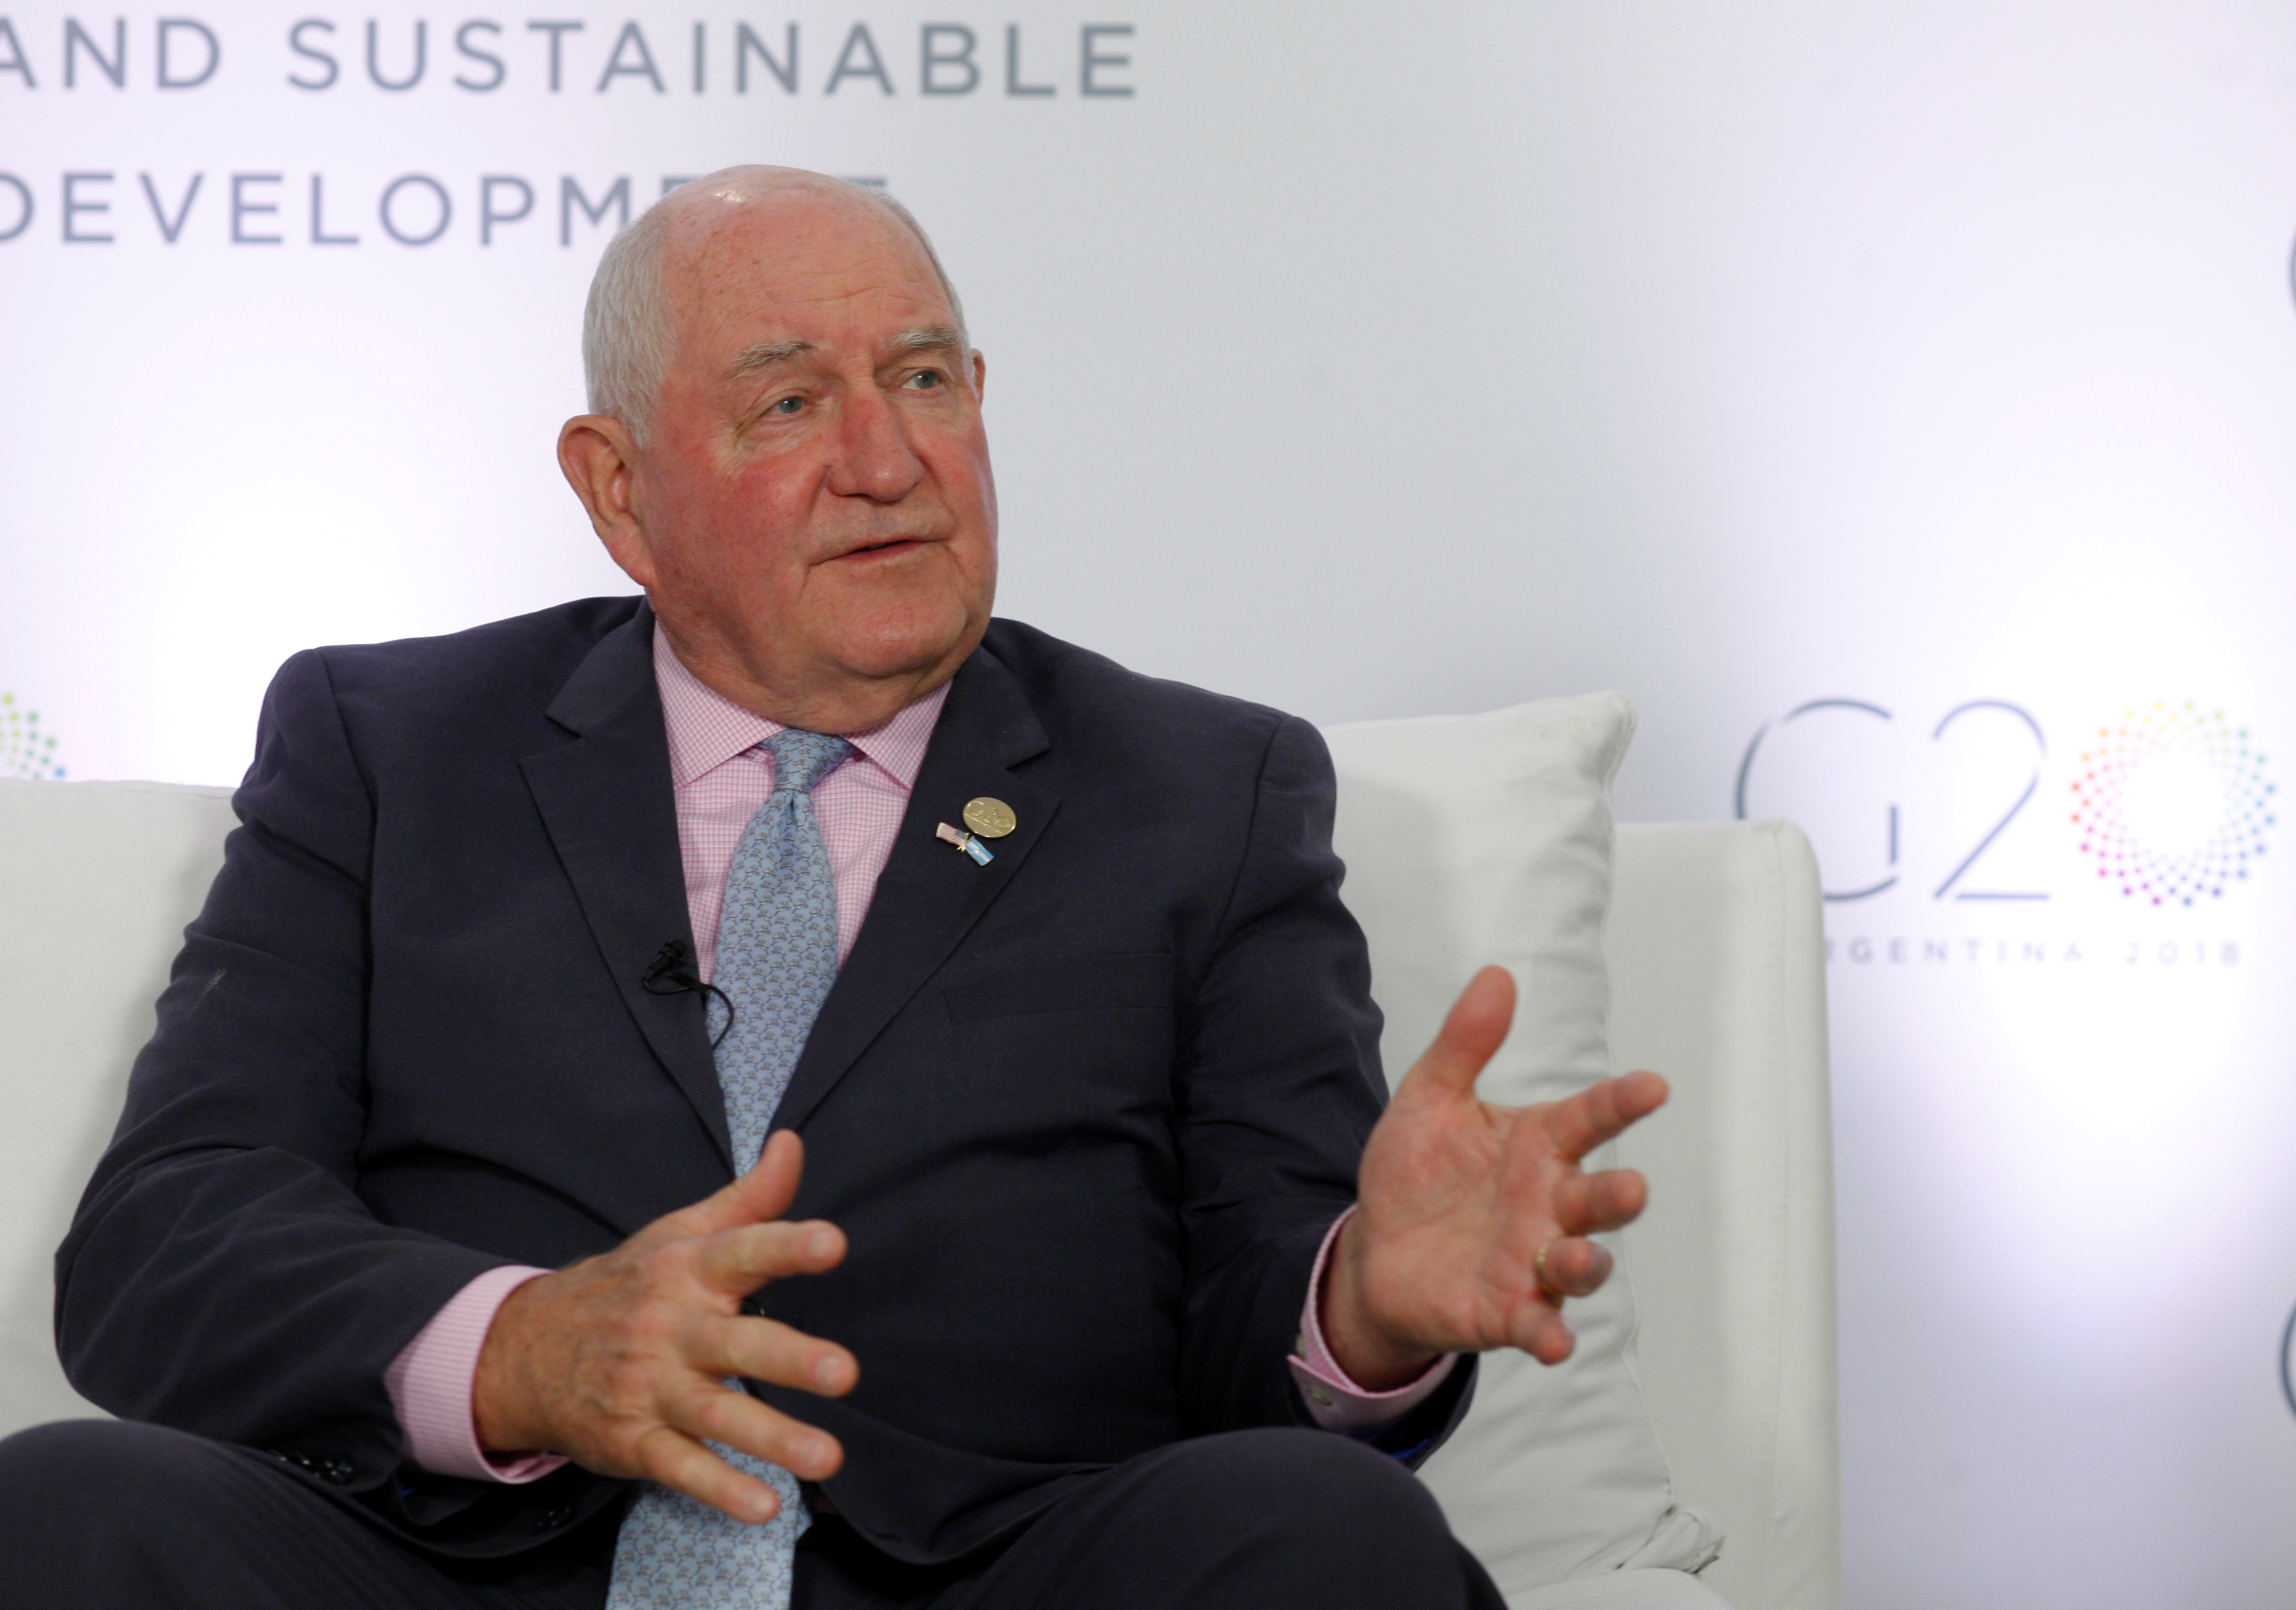 U.S. Agriculture Secretary Sonny Perdue speaks at an interview with Reuters during the G20 Meeting of Agriculture Ministers in Buenos Aires, Argentina, July 28, 2018. REUTERS/Martin Acosta